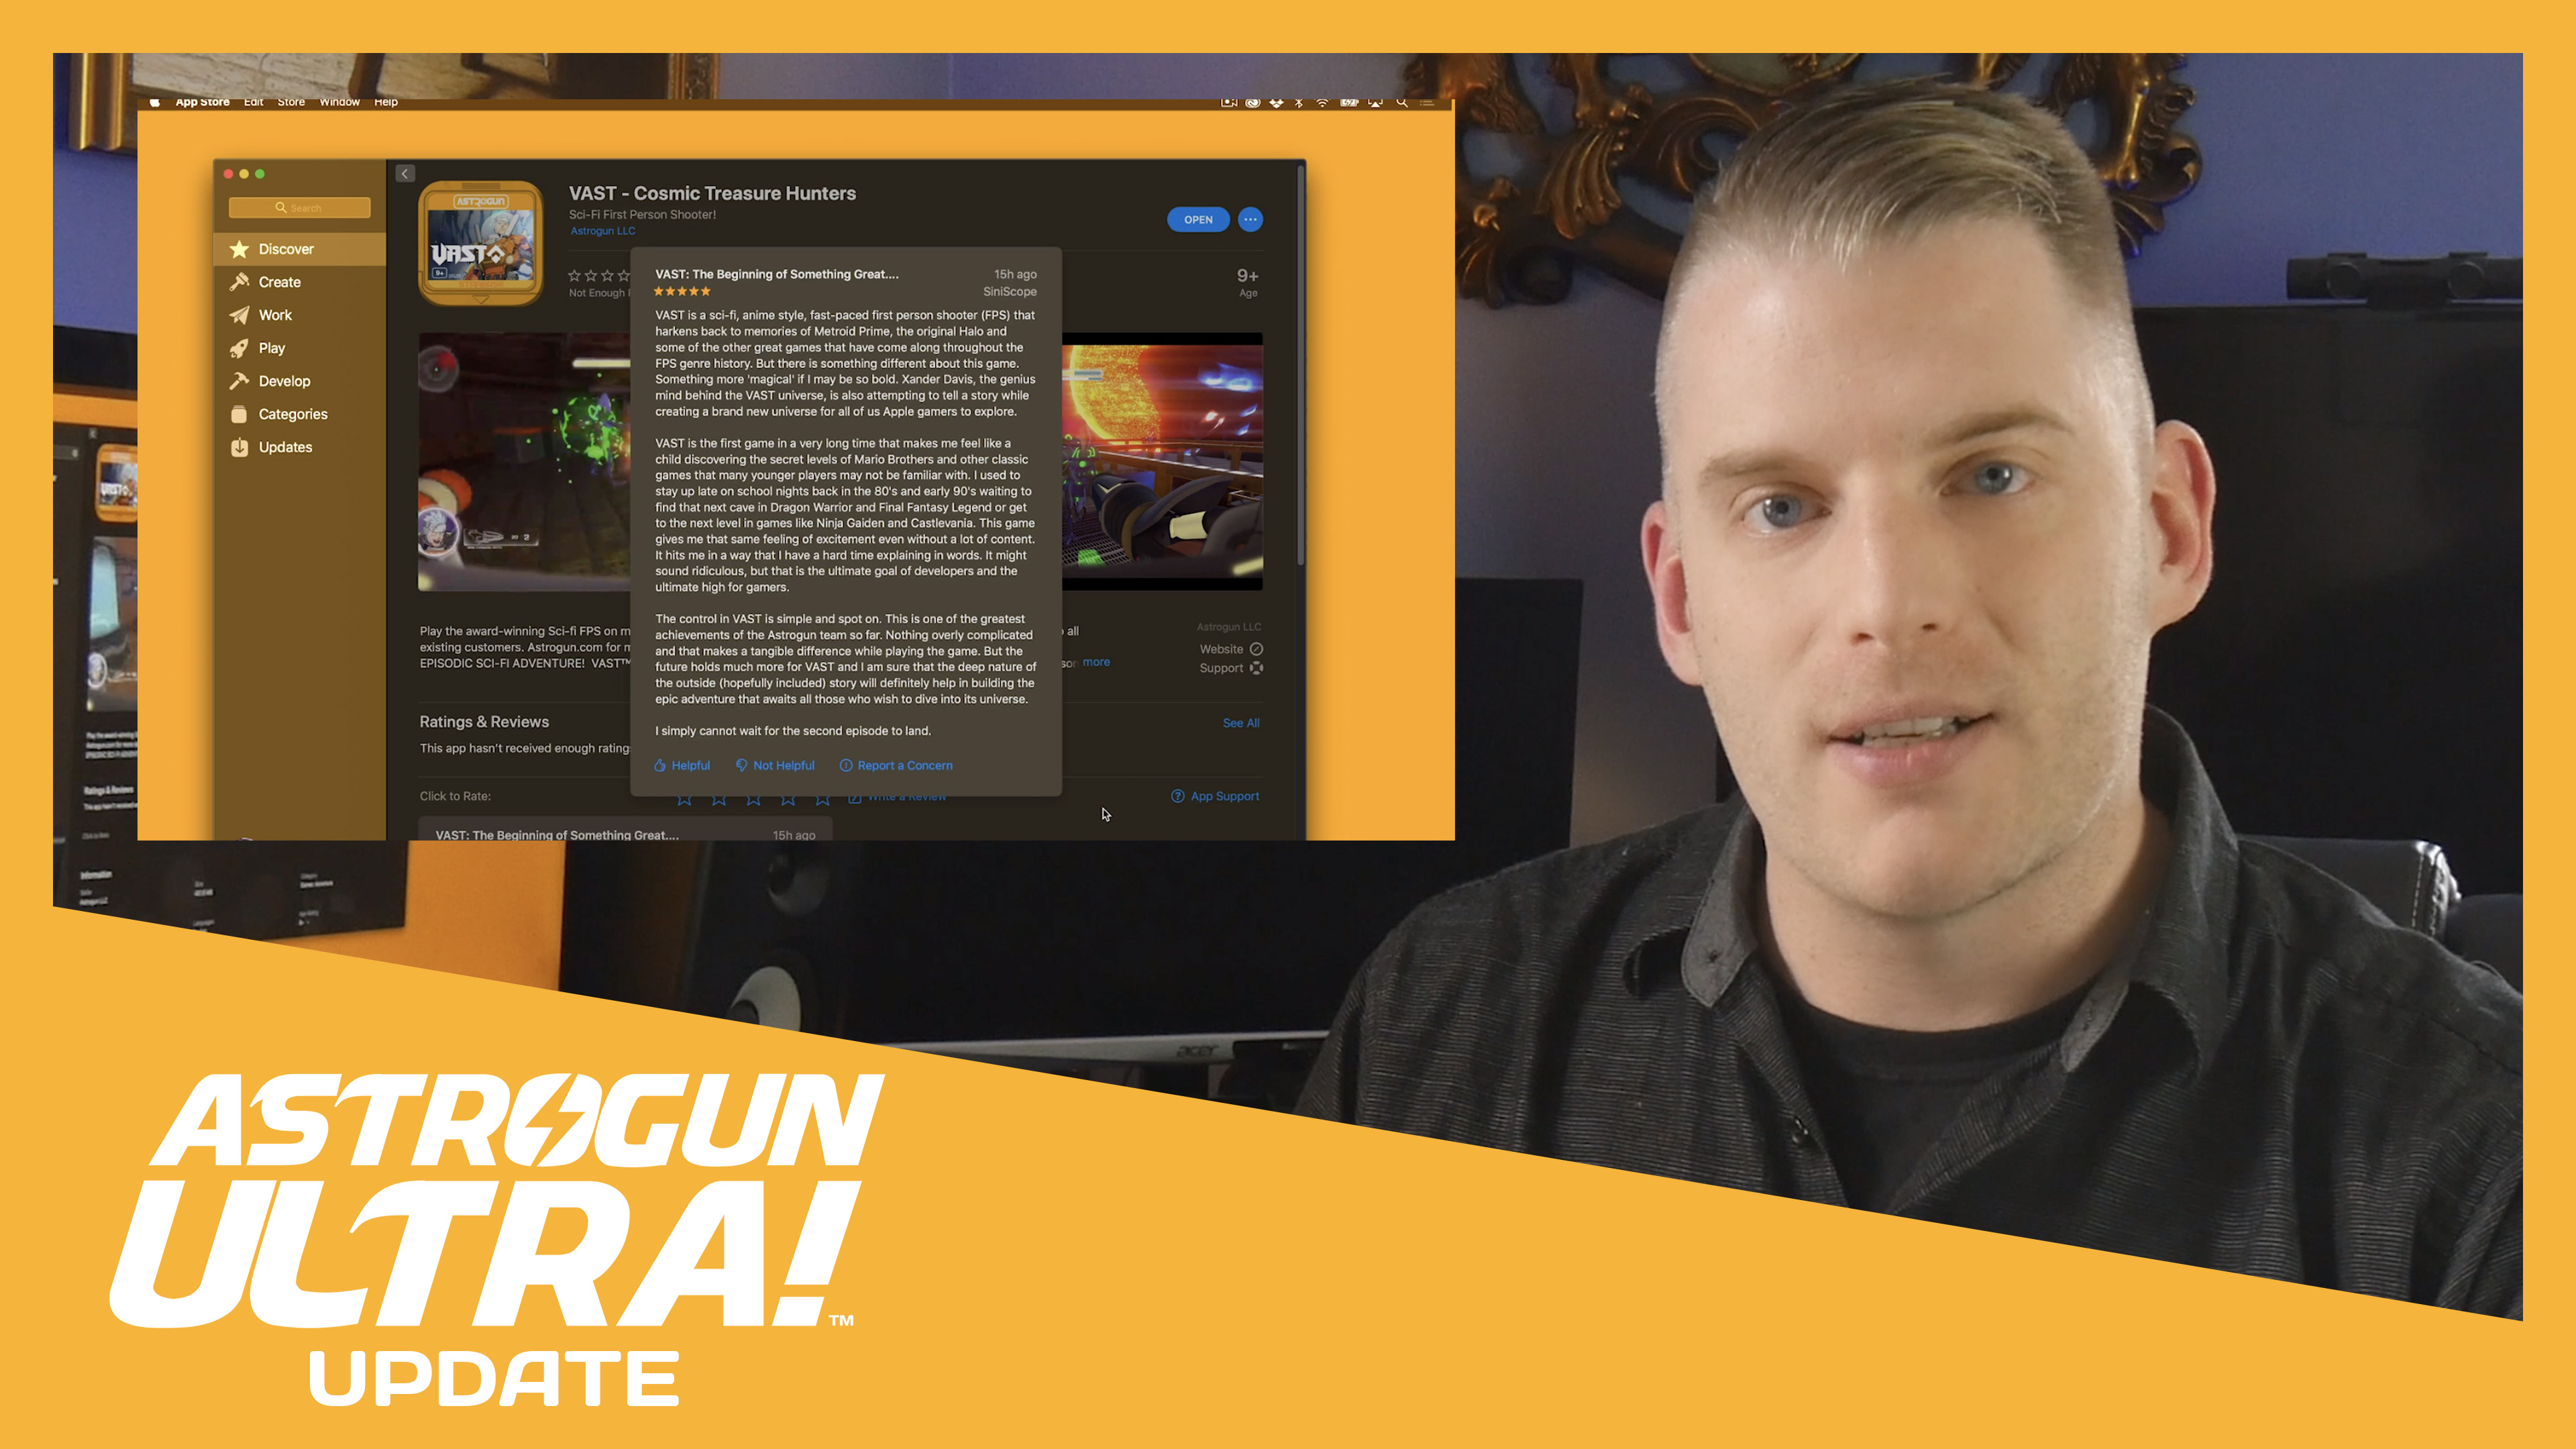 (Video) VAST Launches on macOS, Joining iOS, tvOS, & XL Let's Play Soon!